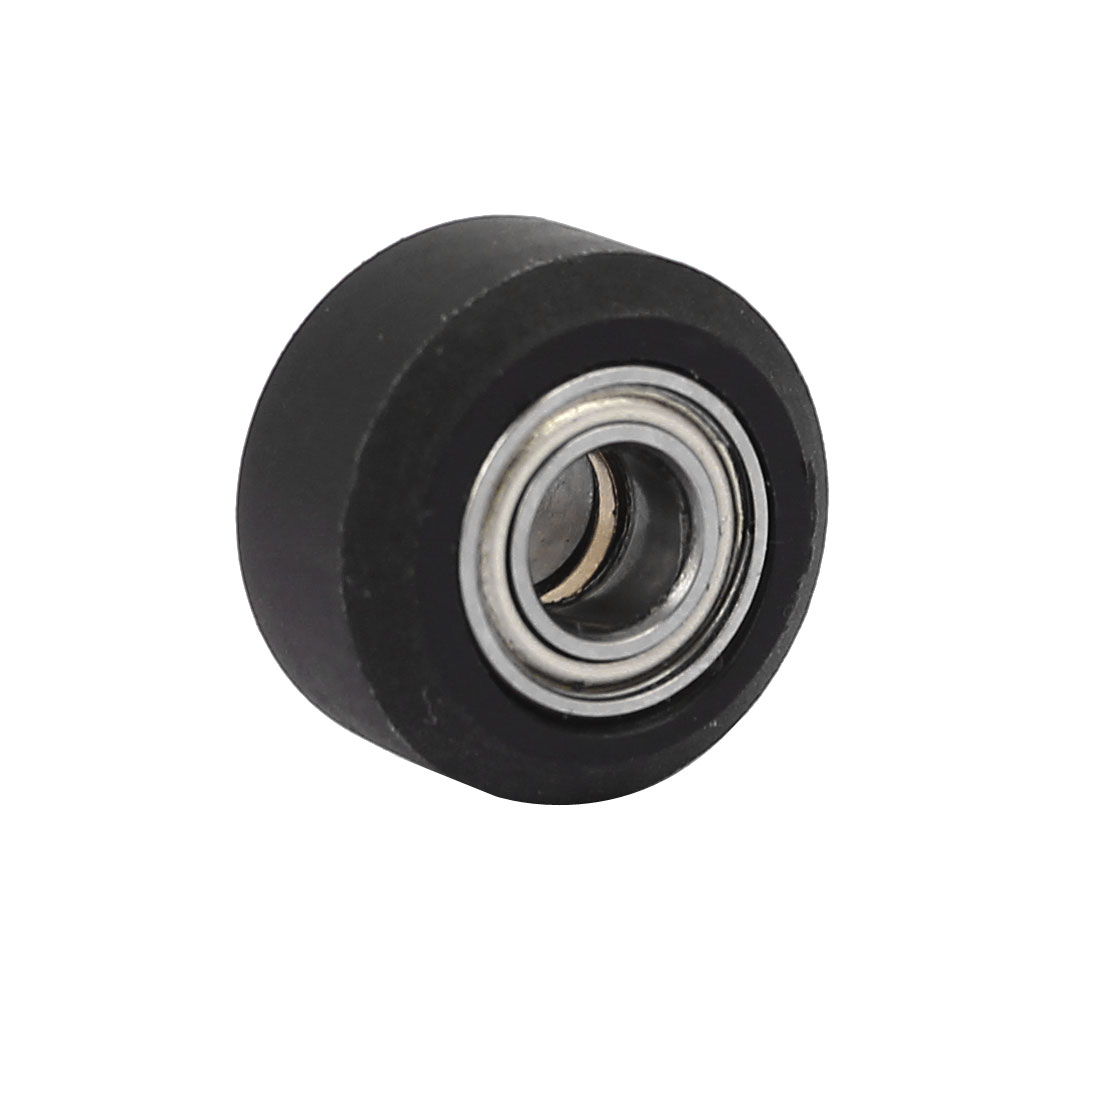 15mm x 5mm x 9mm Plastic Coated Roller Tire Wheel Ball Bearing Black